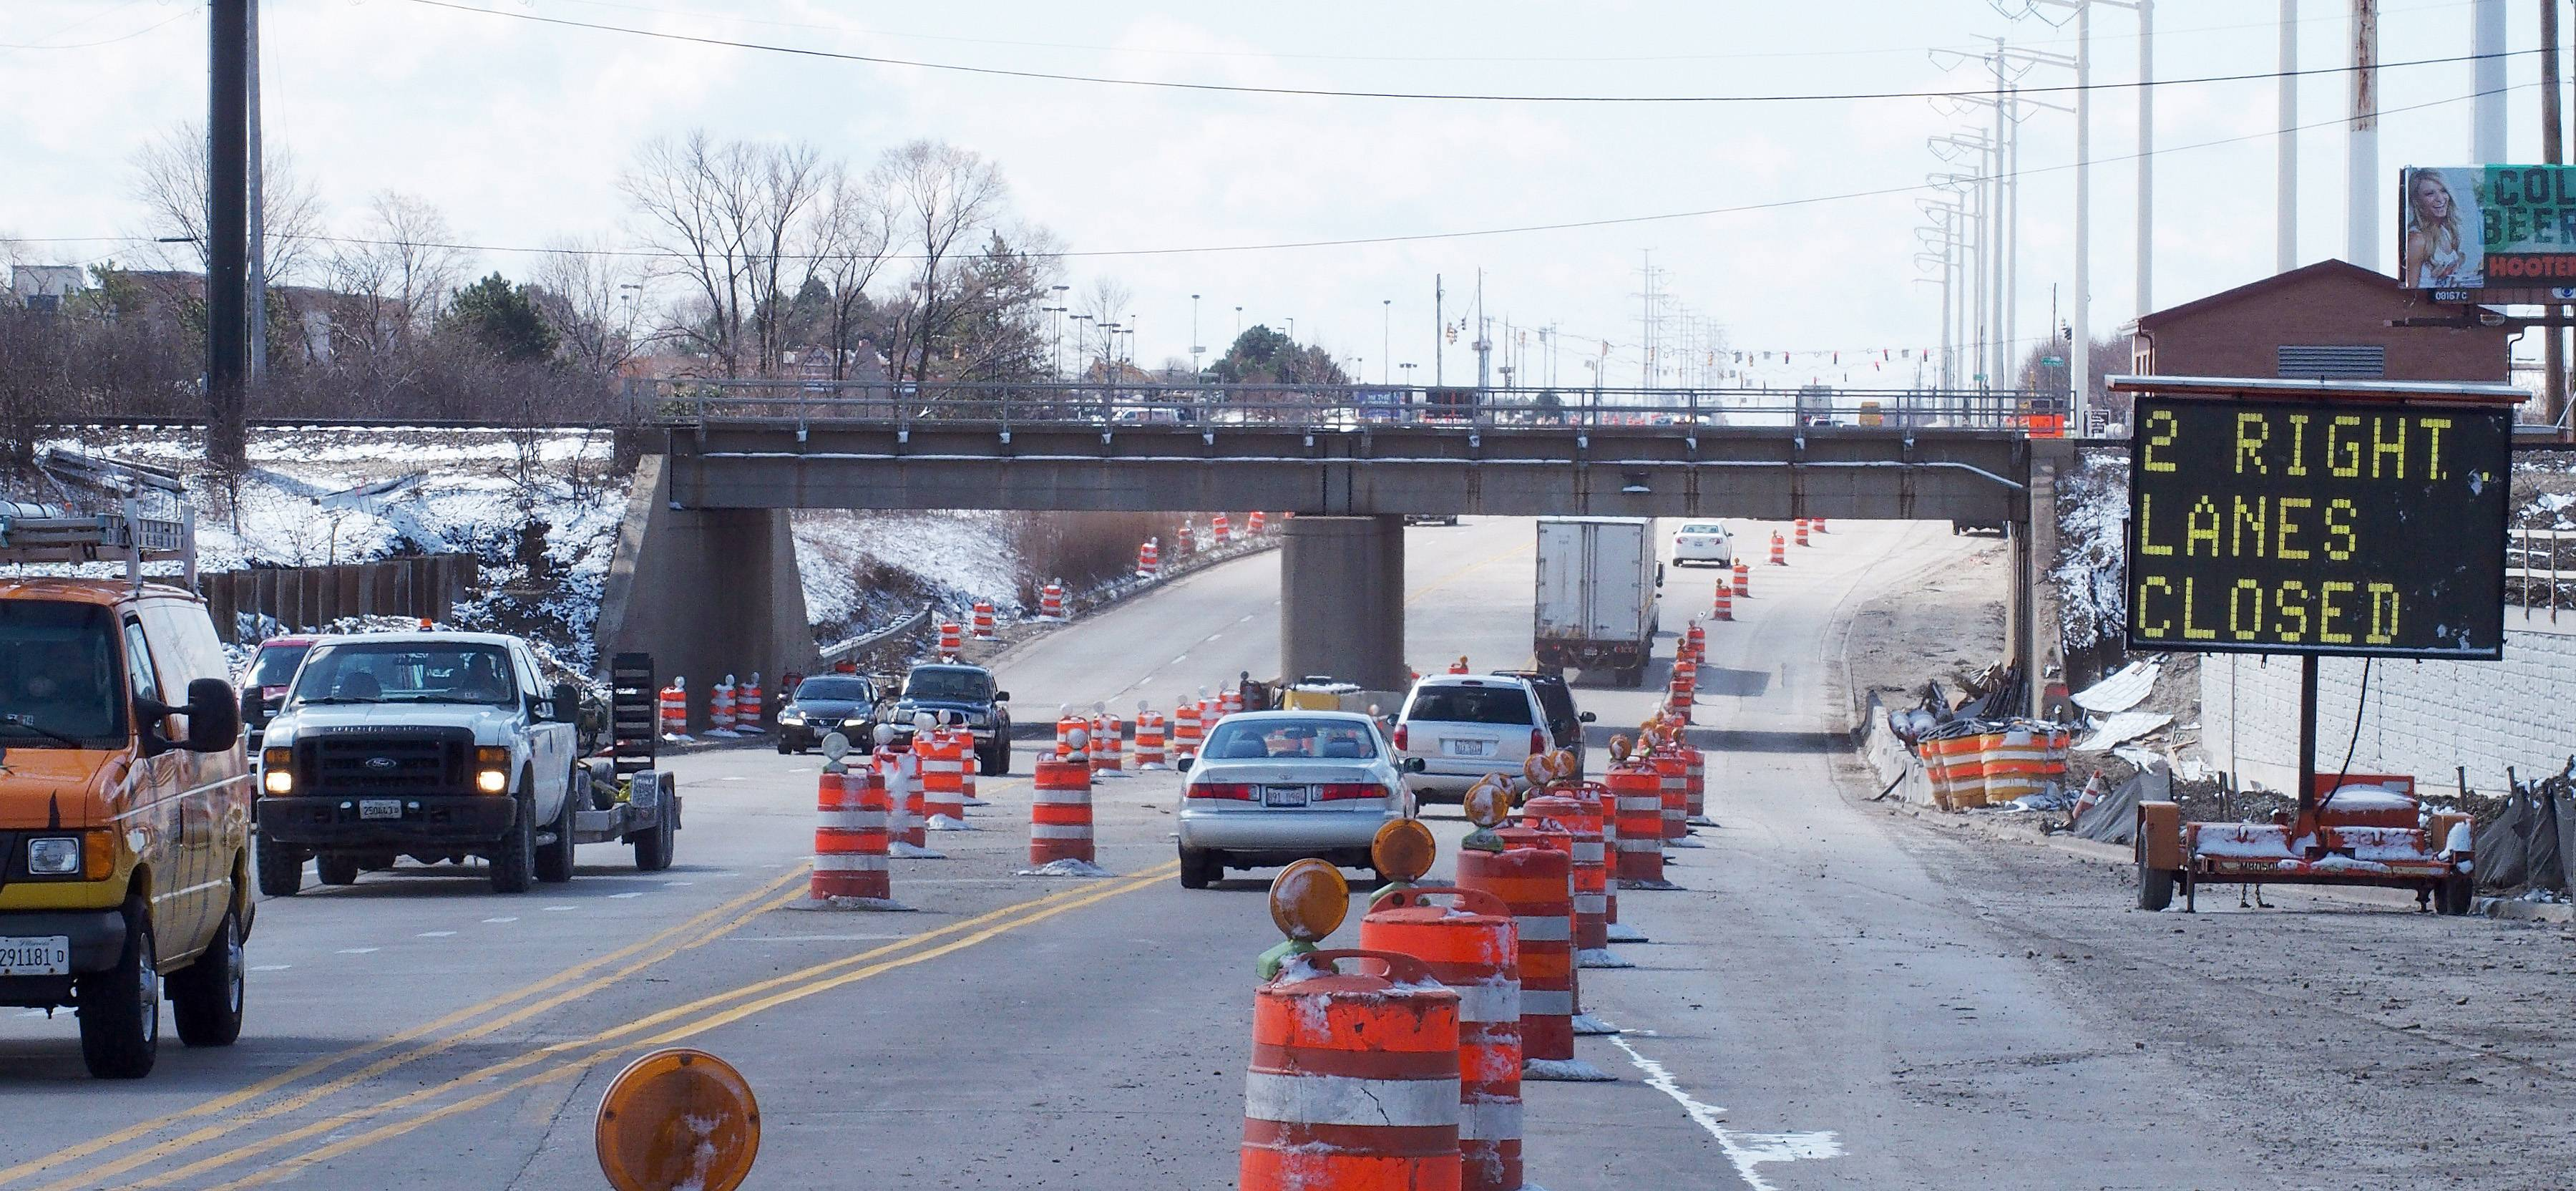 The second season of construction on Route 59 in Naperville and Aurora will begin Monday when traffic is reduced to one lane in each direction under the BNSF railroad tracks between North Aurora Road and Glacier Park Avenue/Meridian parkway. The closure is expected to be in place until fall.